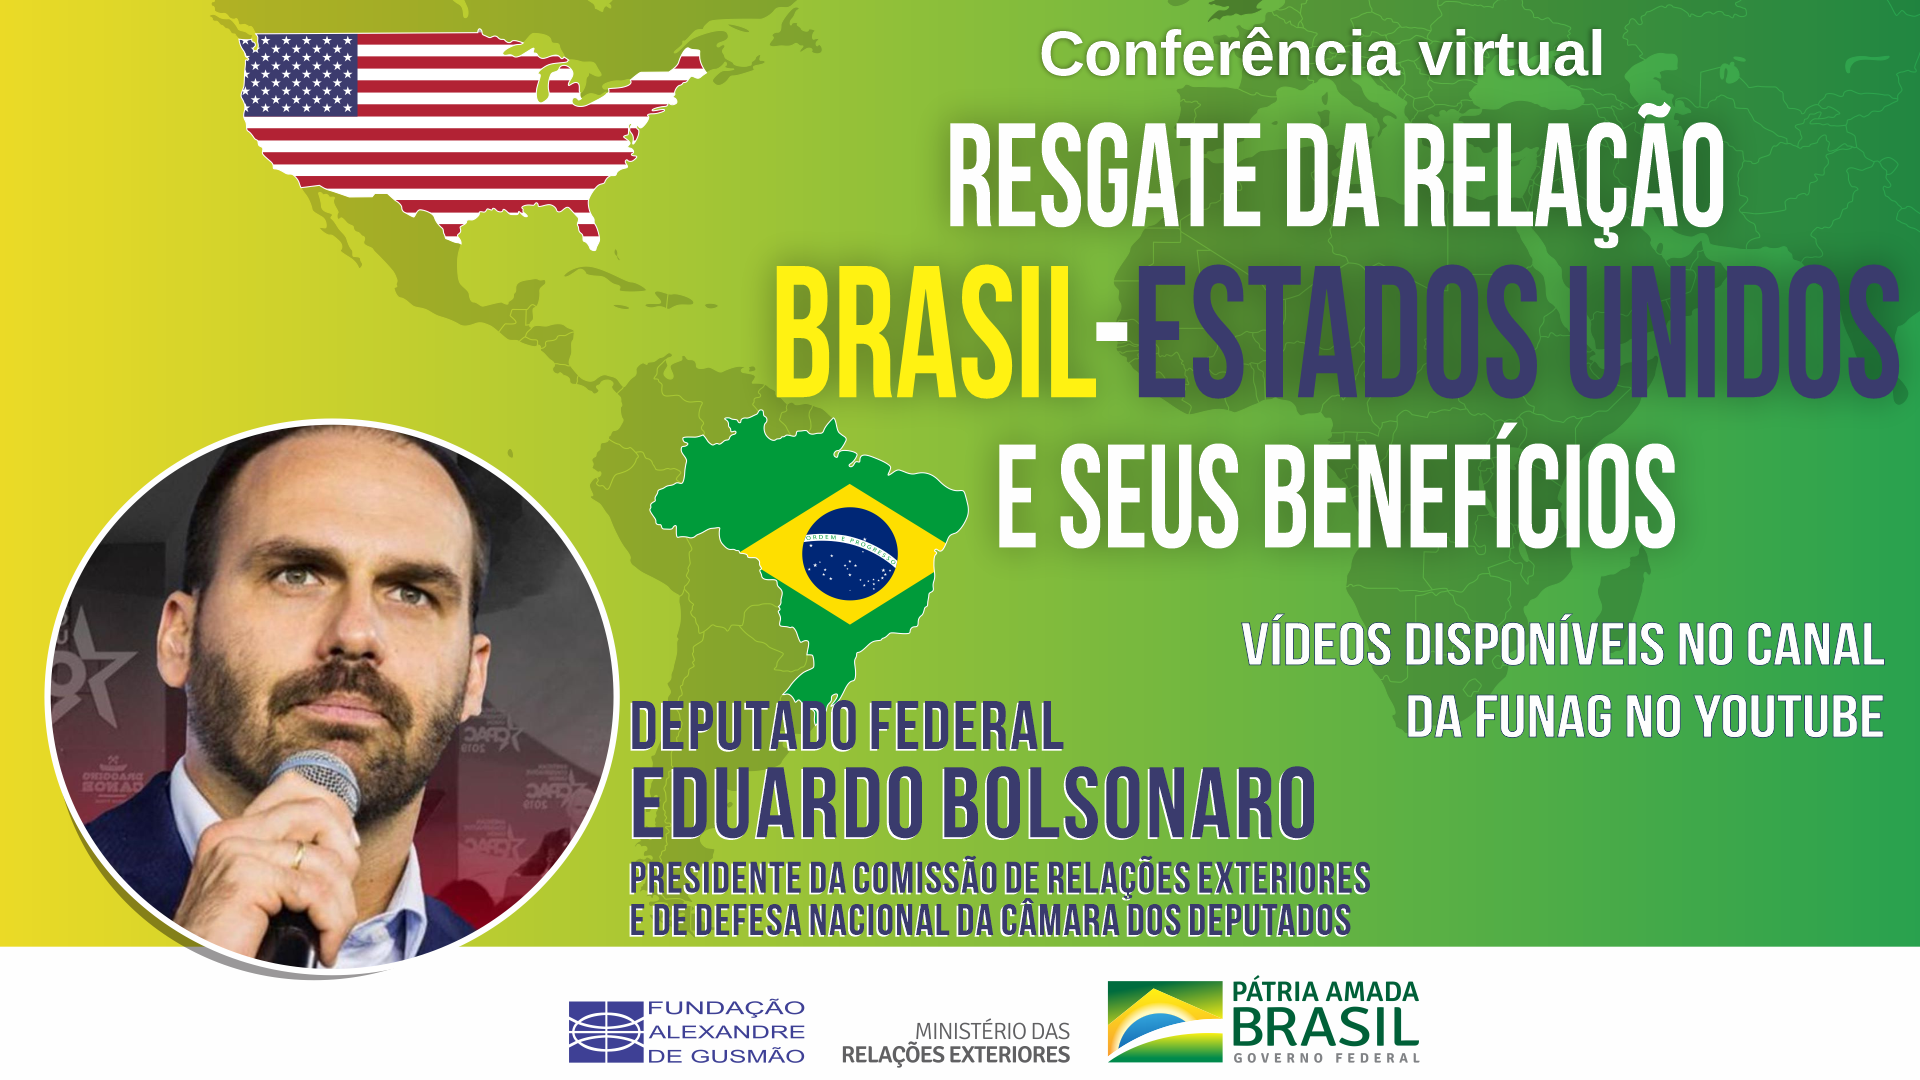 Watch the videos of the conference by Congressman Eduardo Bolsonaro on reclaiming the Brazil-US relationship